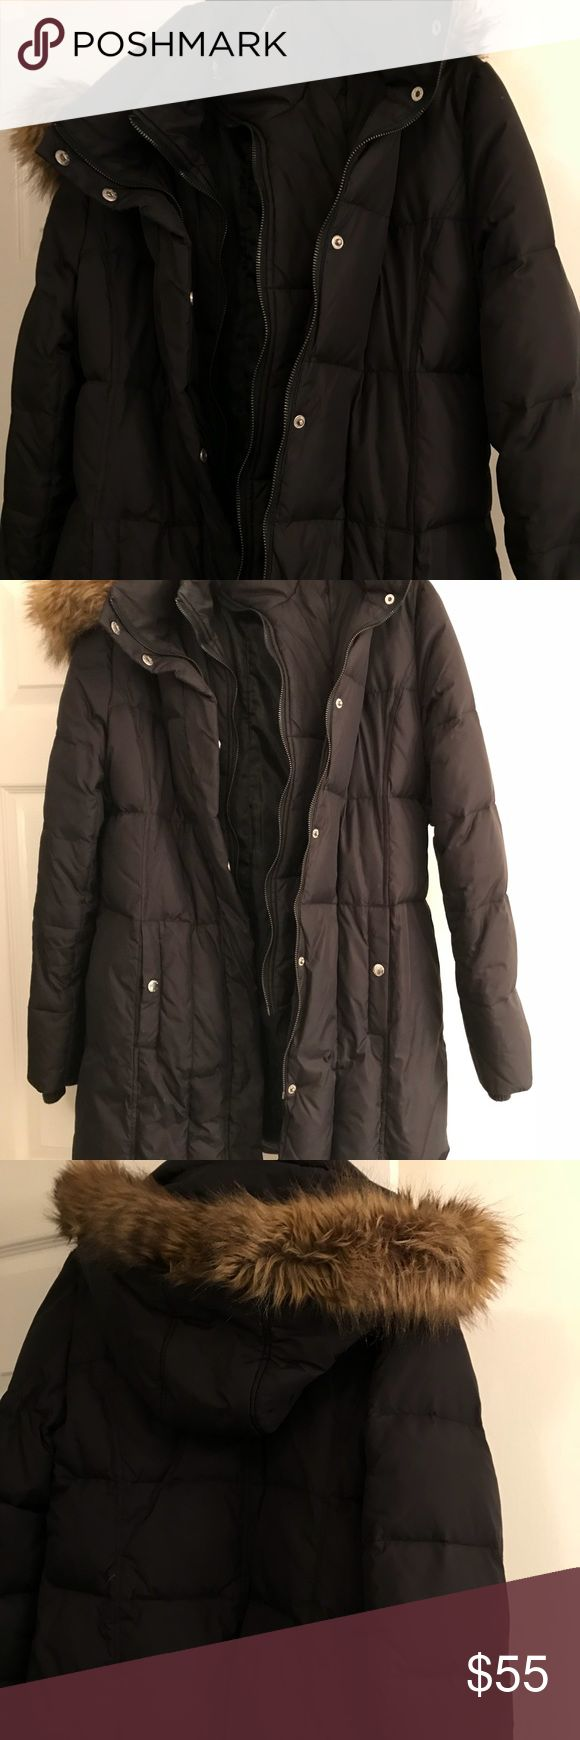 Michael Kors Long puffer coat with hood sz large I have only worn this a couple times. It's a Michael Kors Long black down puffer coat. Size large. Detachable hood. It has two zippers and snaps. I wore it to my daughters ice skating practice and I was so warm! She quit lol so I have no need for it. Excellent condition. Michael Kors Jackets & Coats Puffers